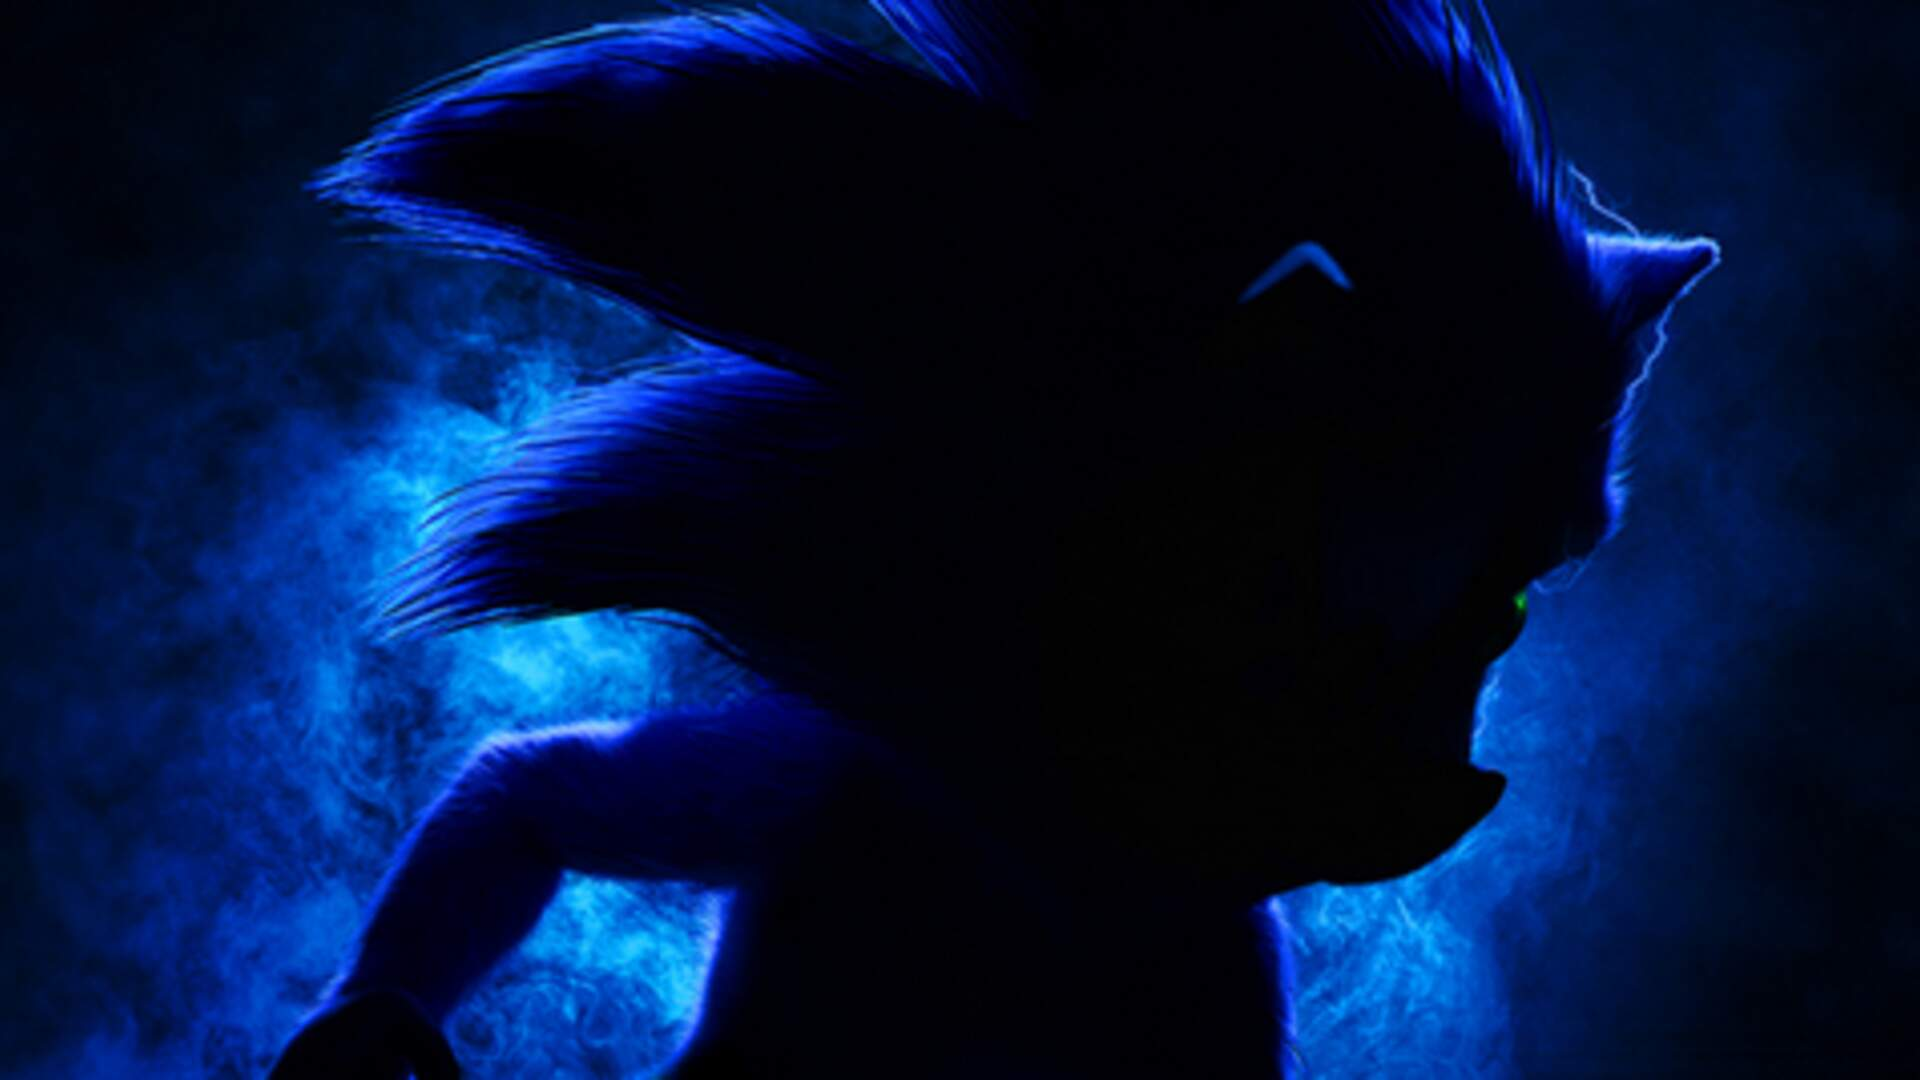 The Horrifying Live-Action Movie Sonic Should Have Taken a Few Lessons From Detective Pikachu